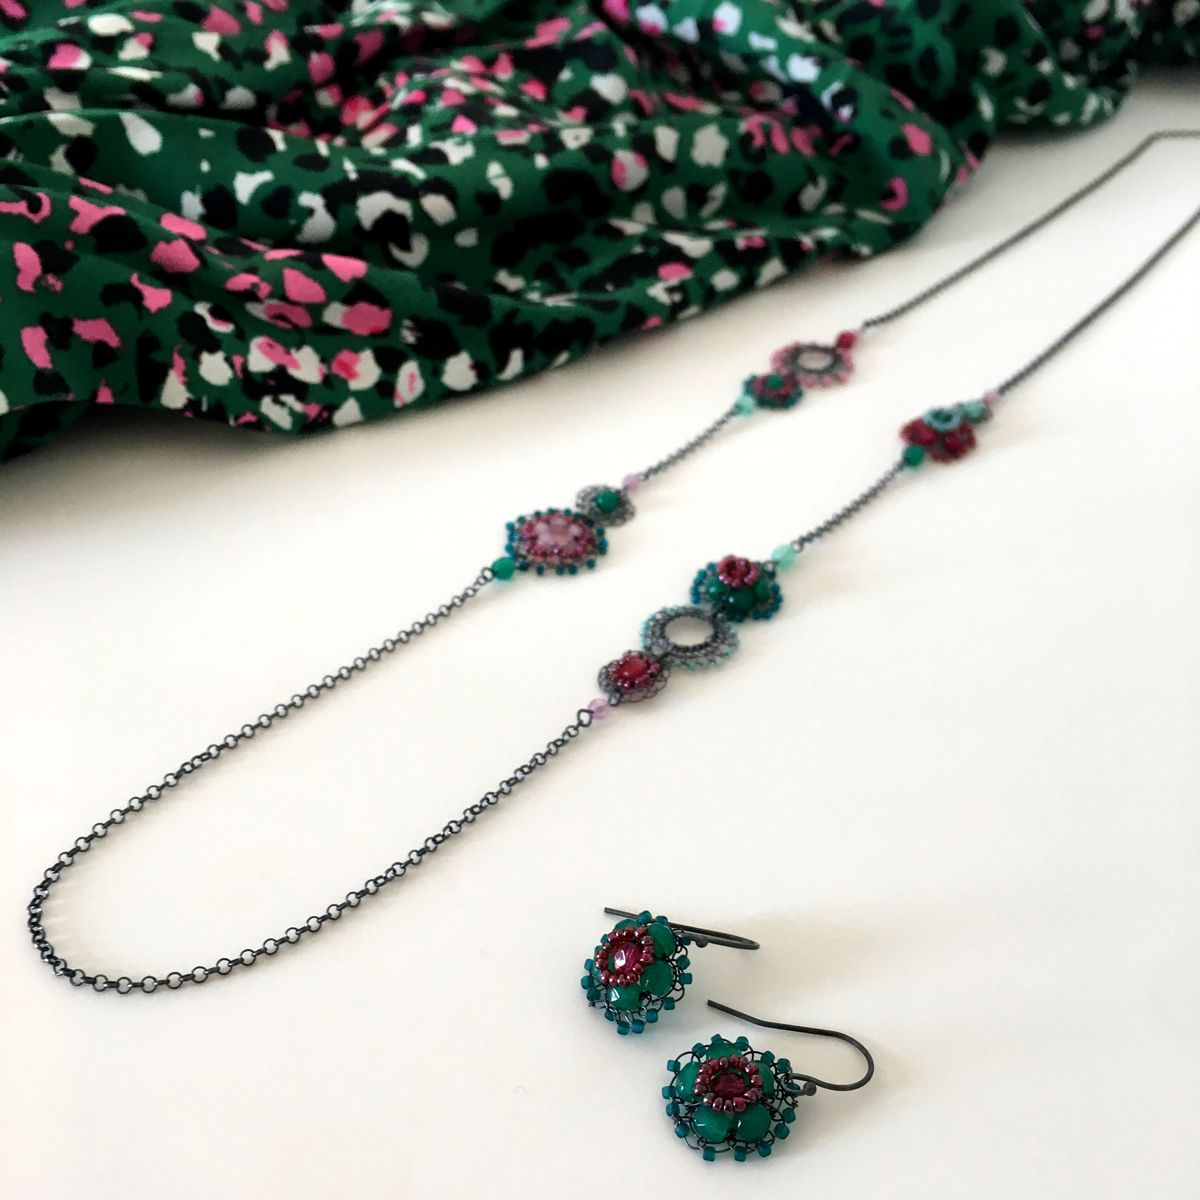 Jewellery isnpired by your outfit